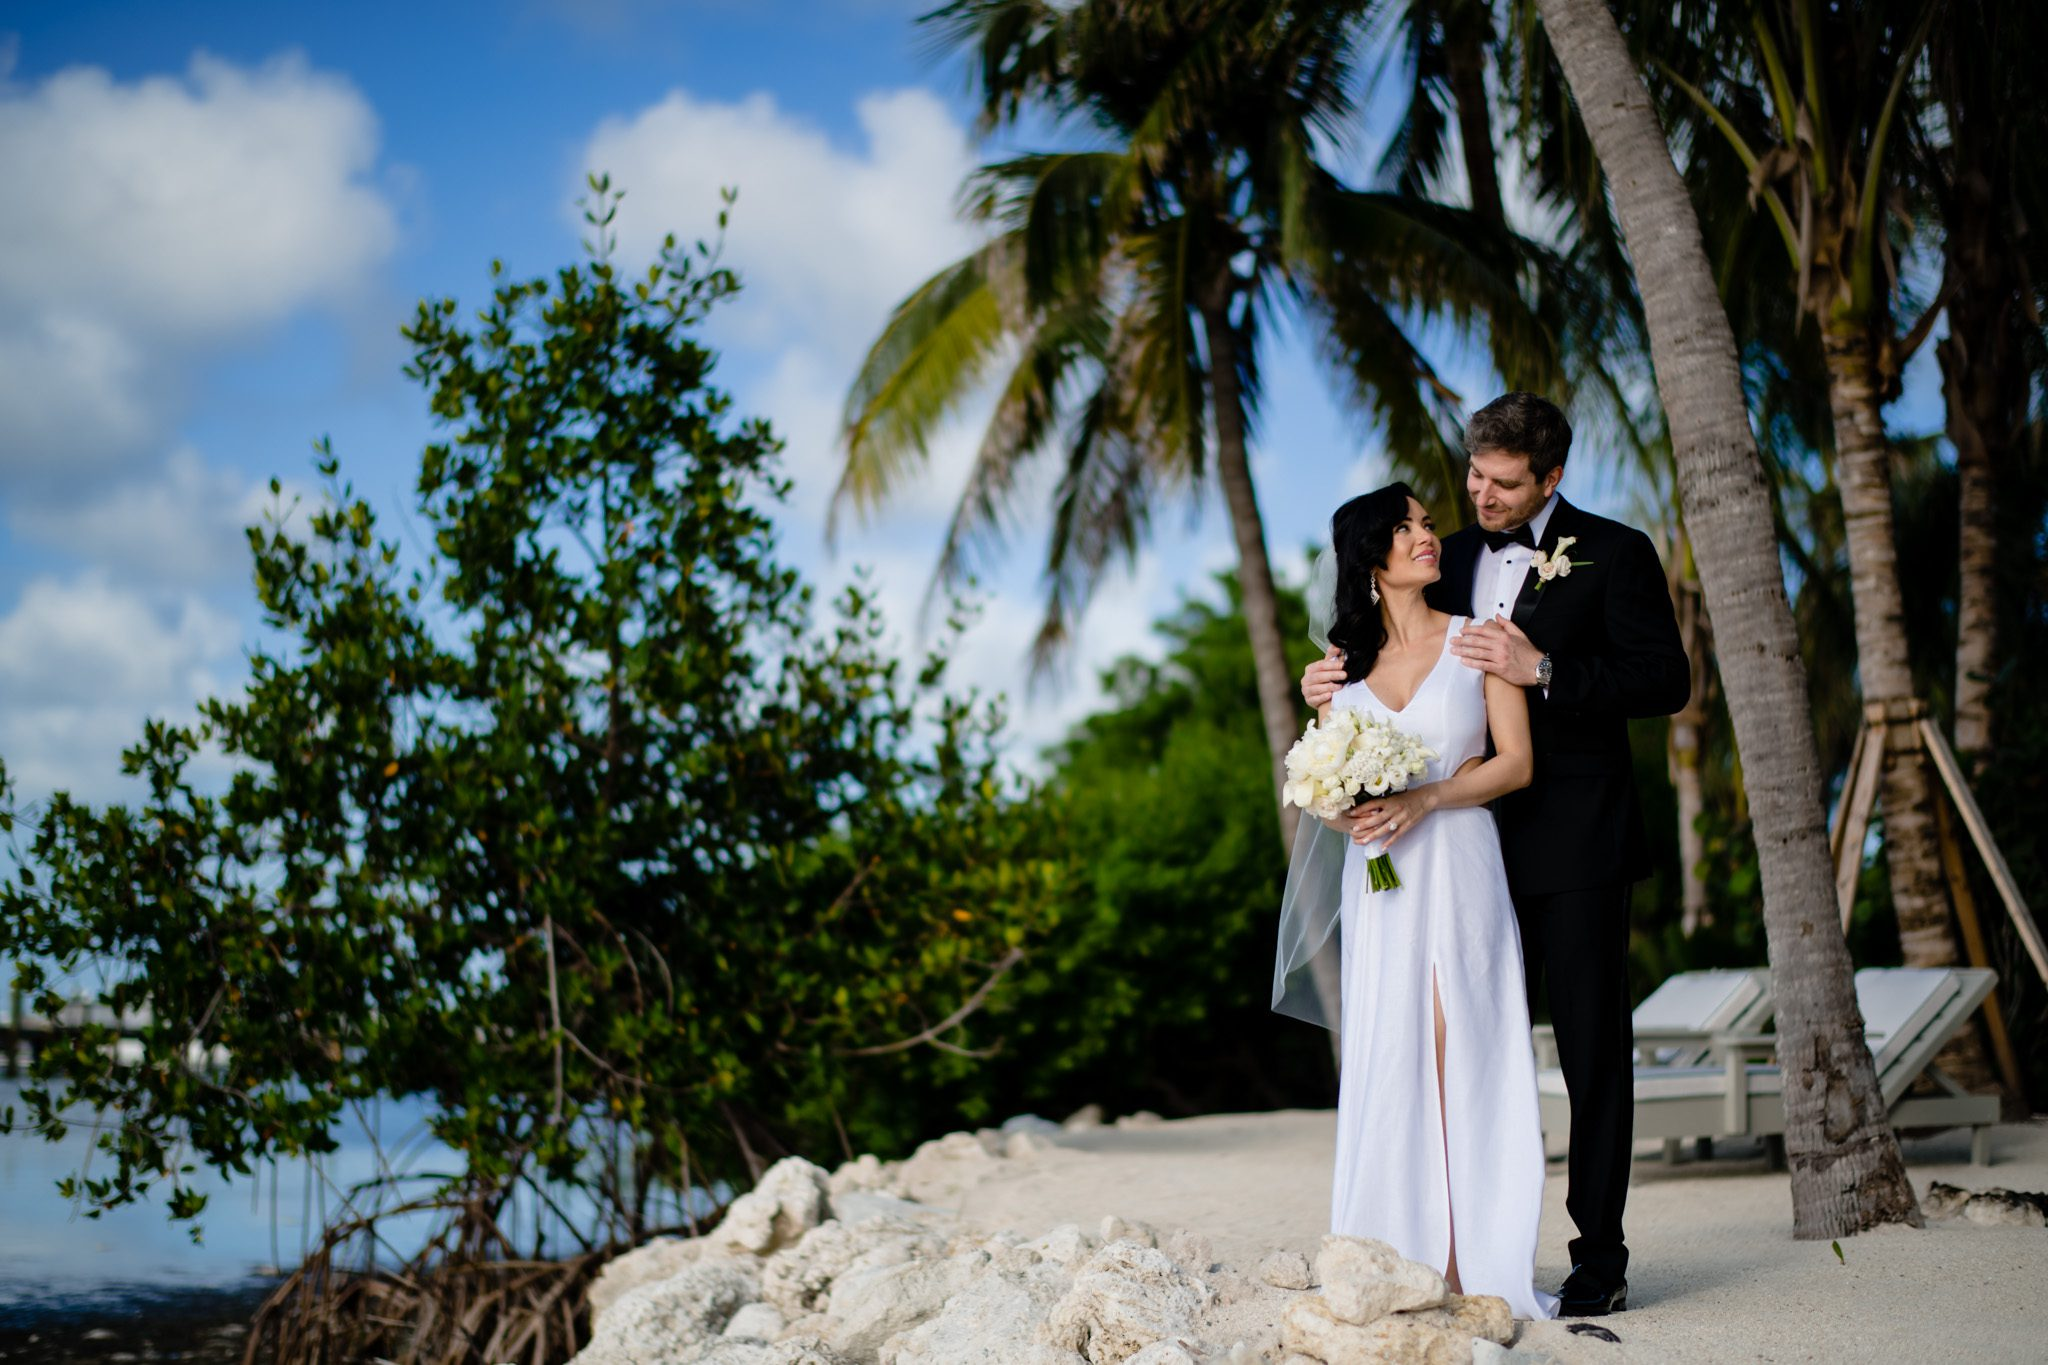 bride and groom standing on the beach at little palm island, looking at each other